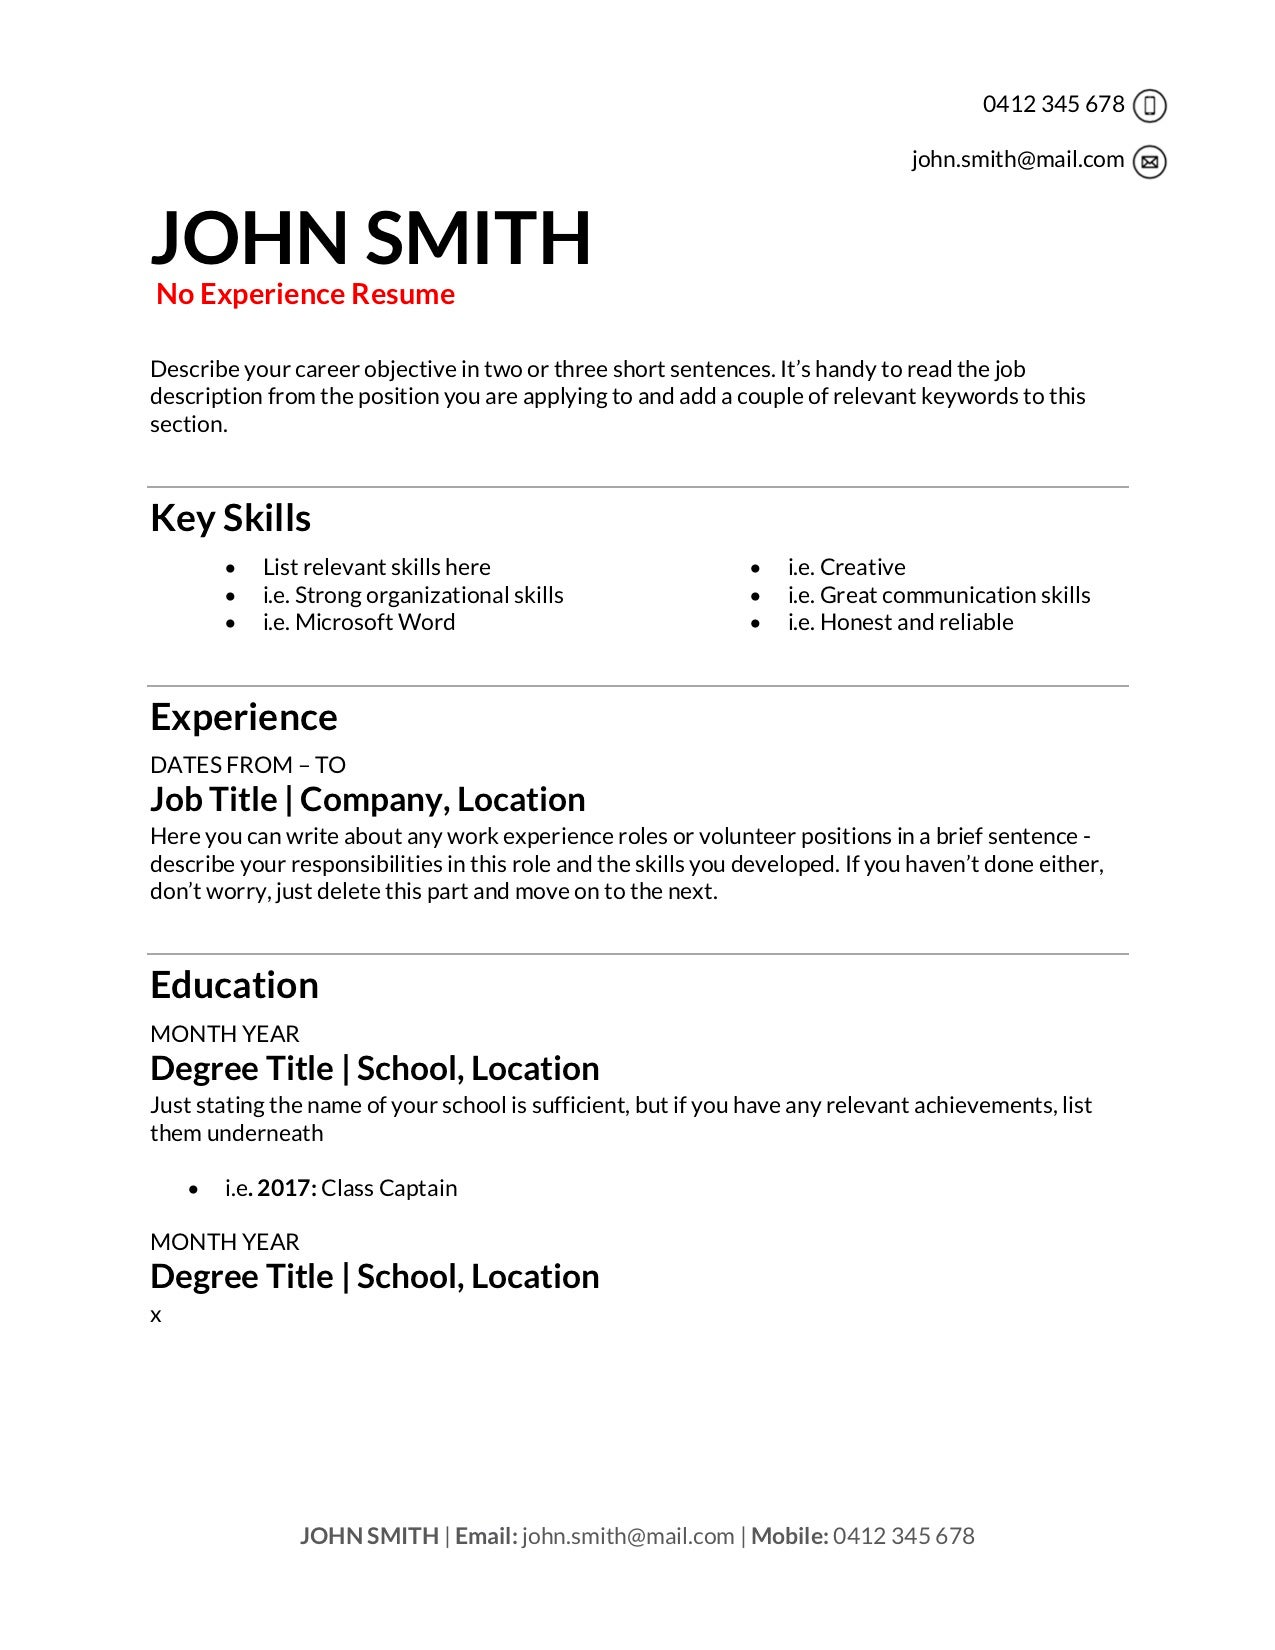 free resume templates to write in training au for someone with little job experience no Resume Resume For Someone With Little Job Experience